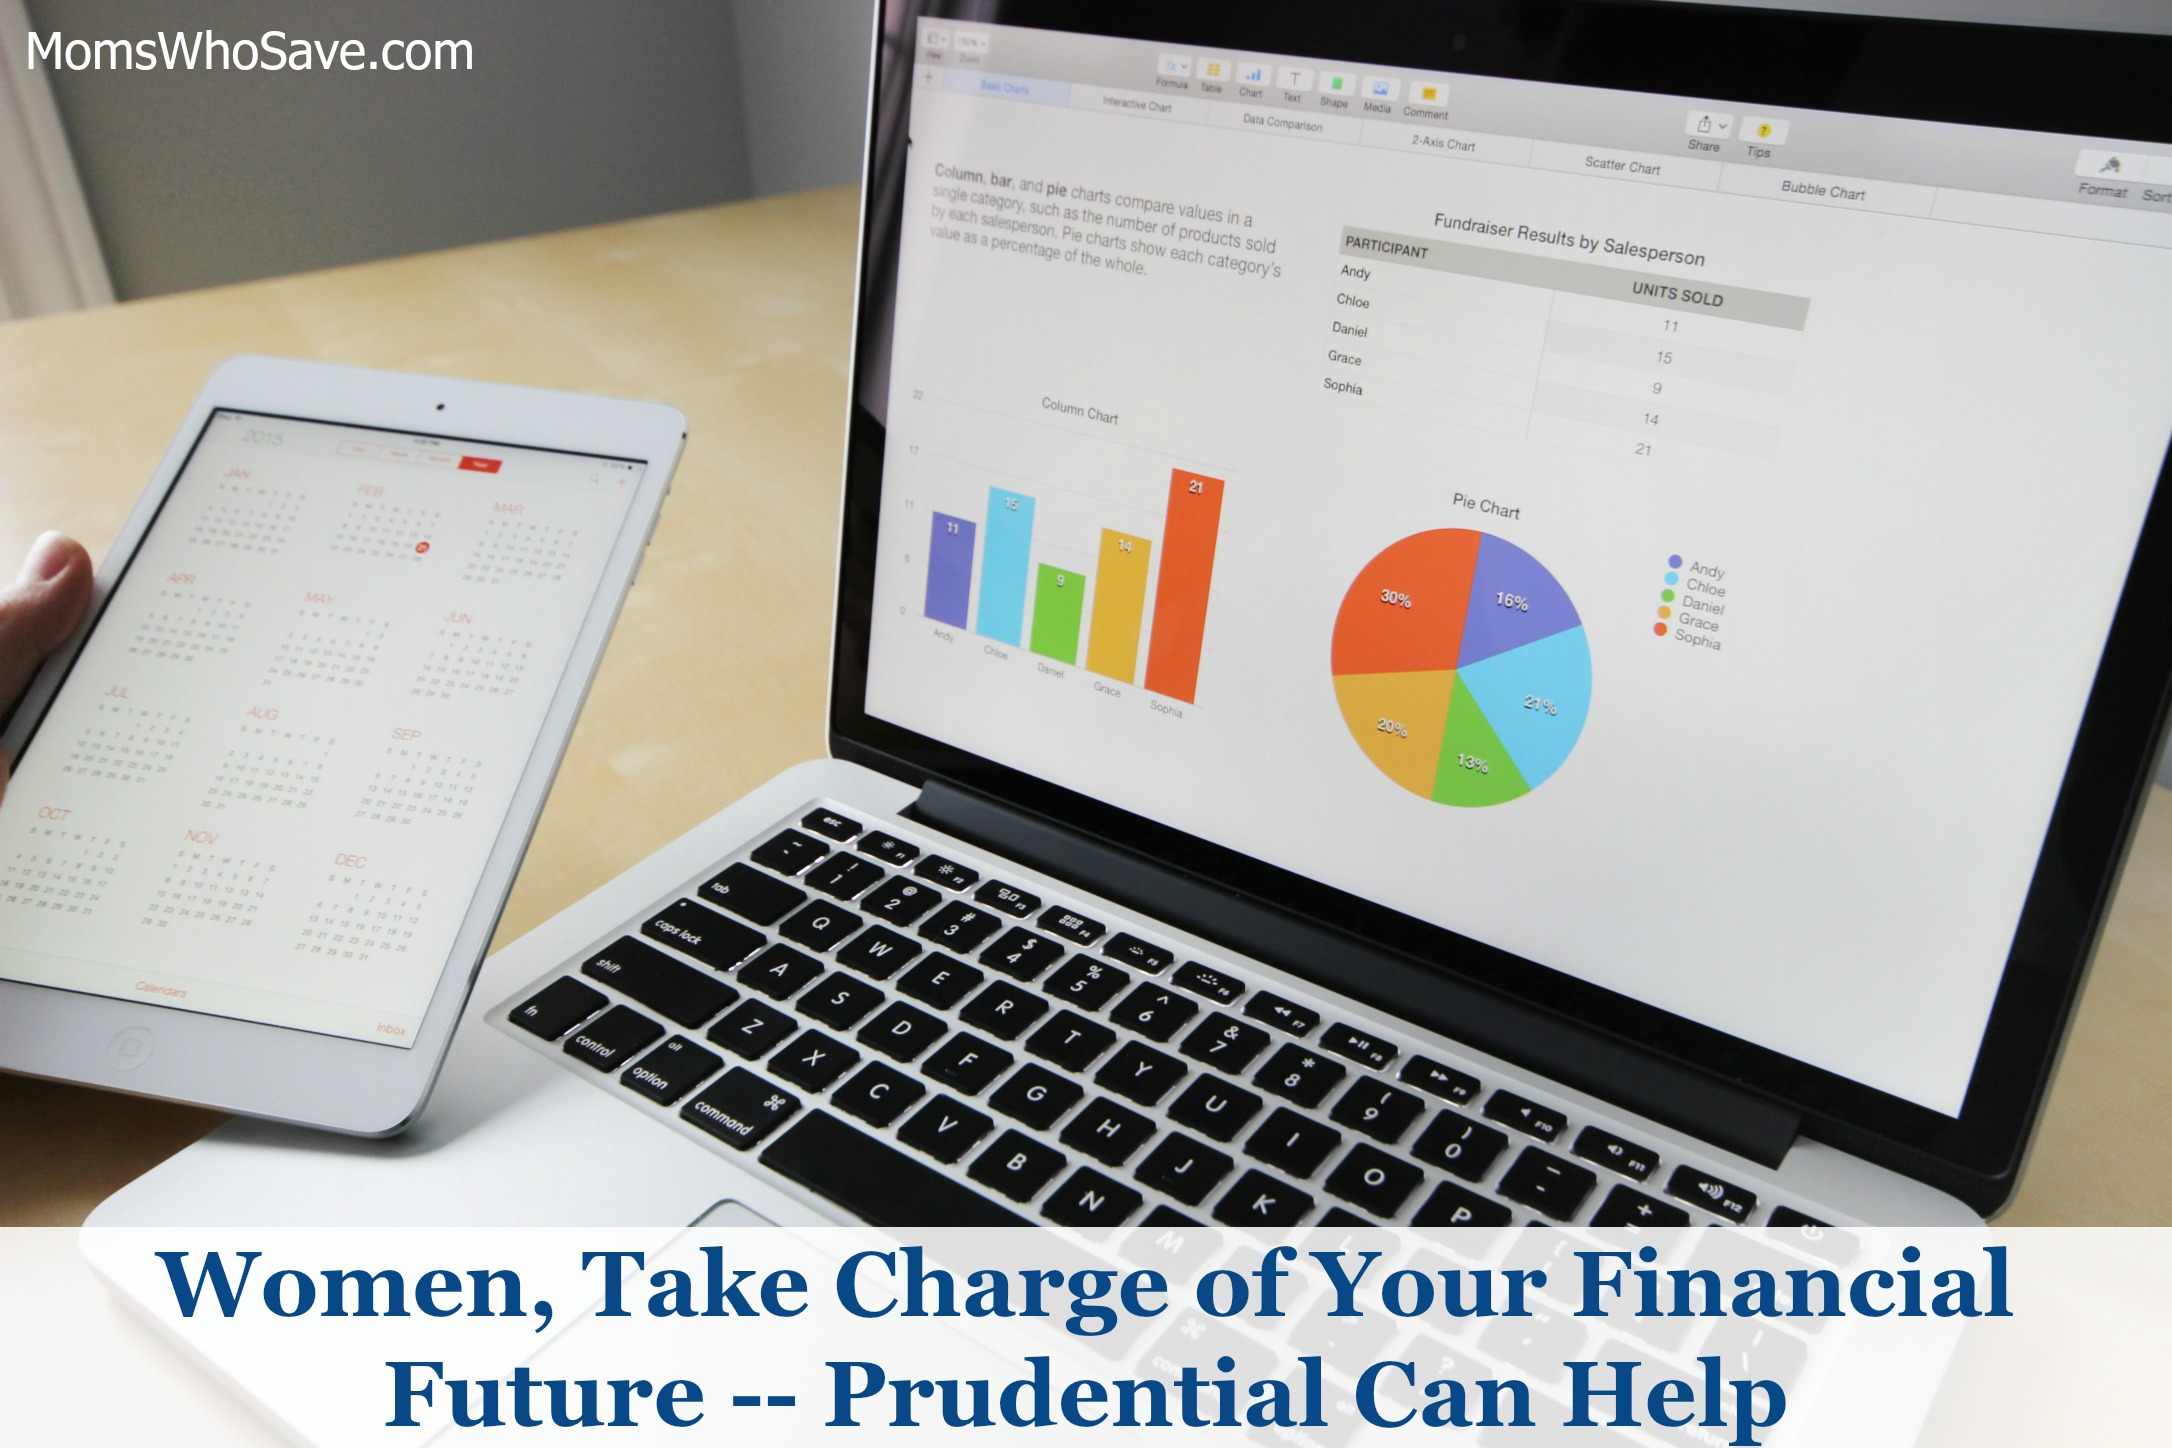 Women, Take Charge of Your Financial Future — Prudential Can Help